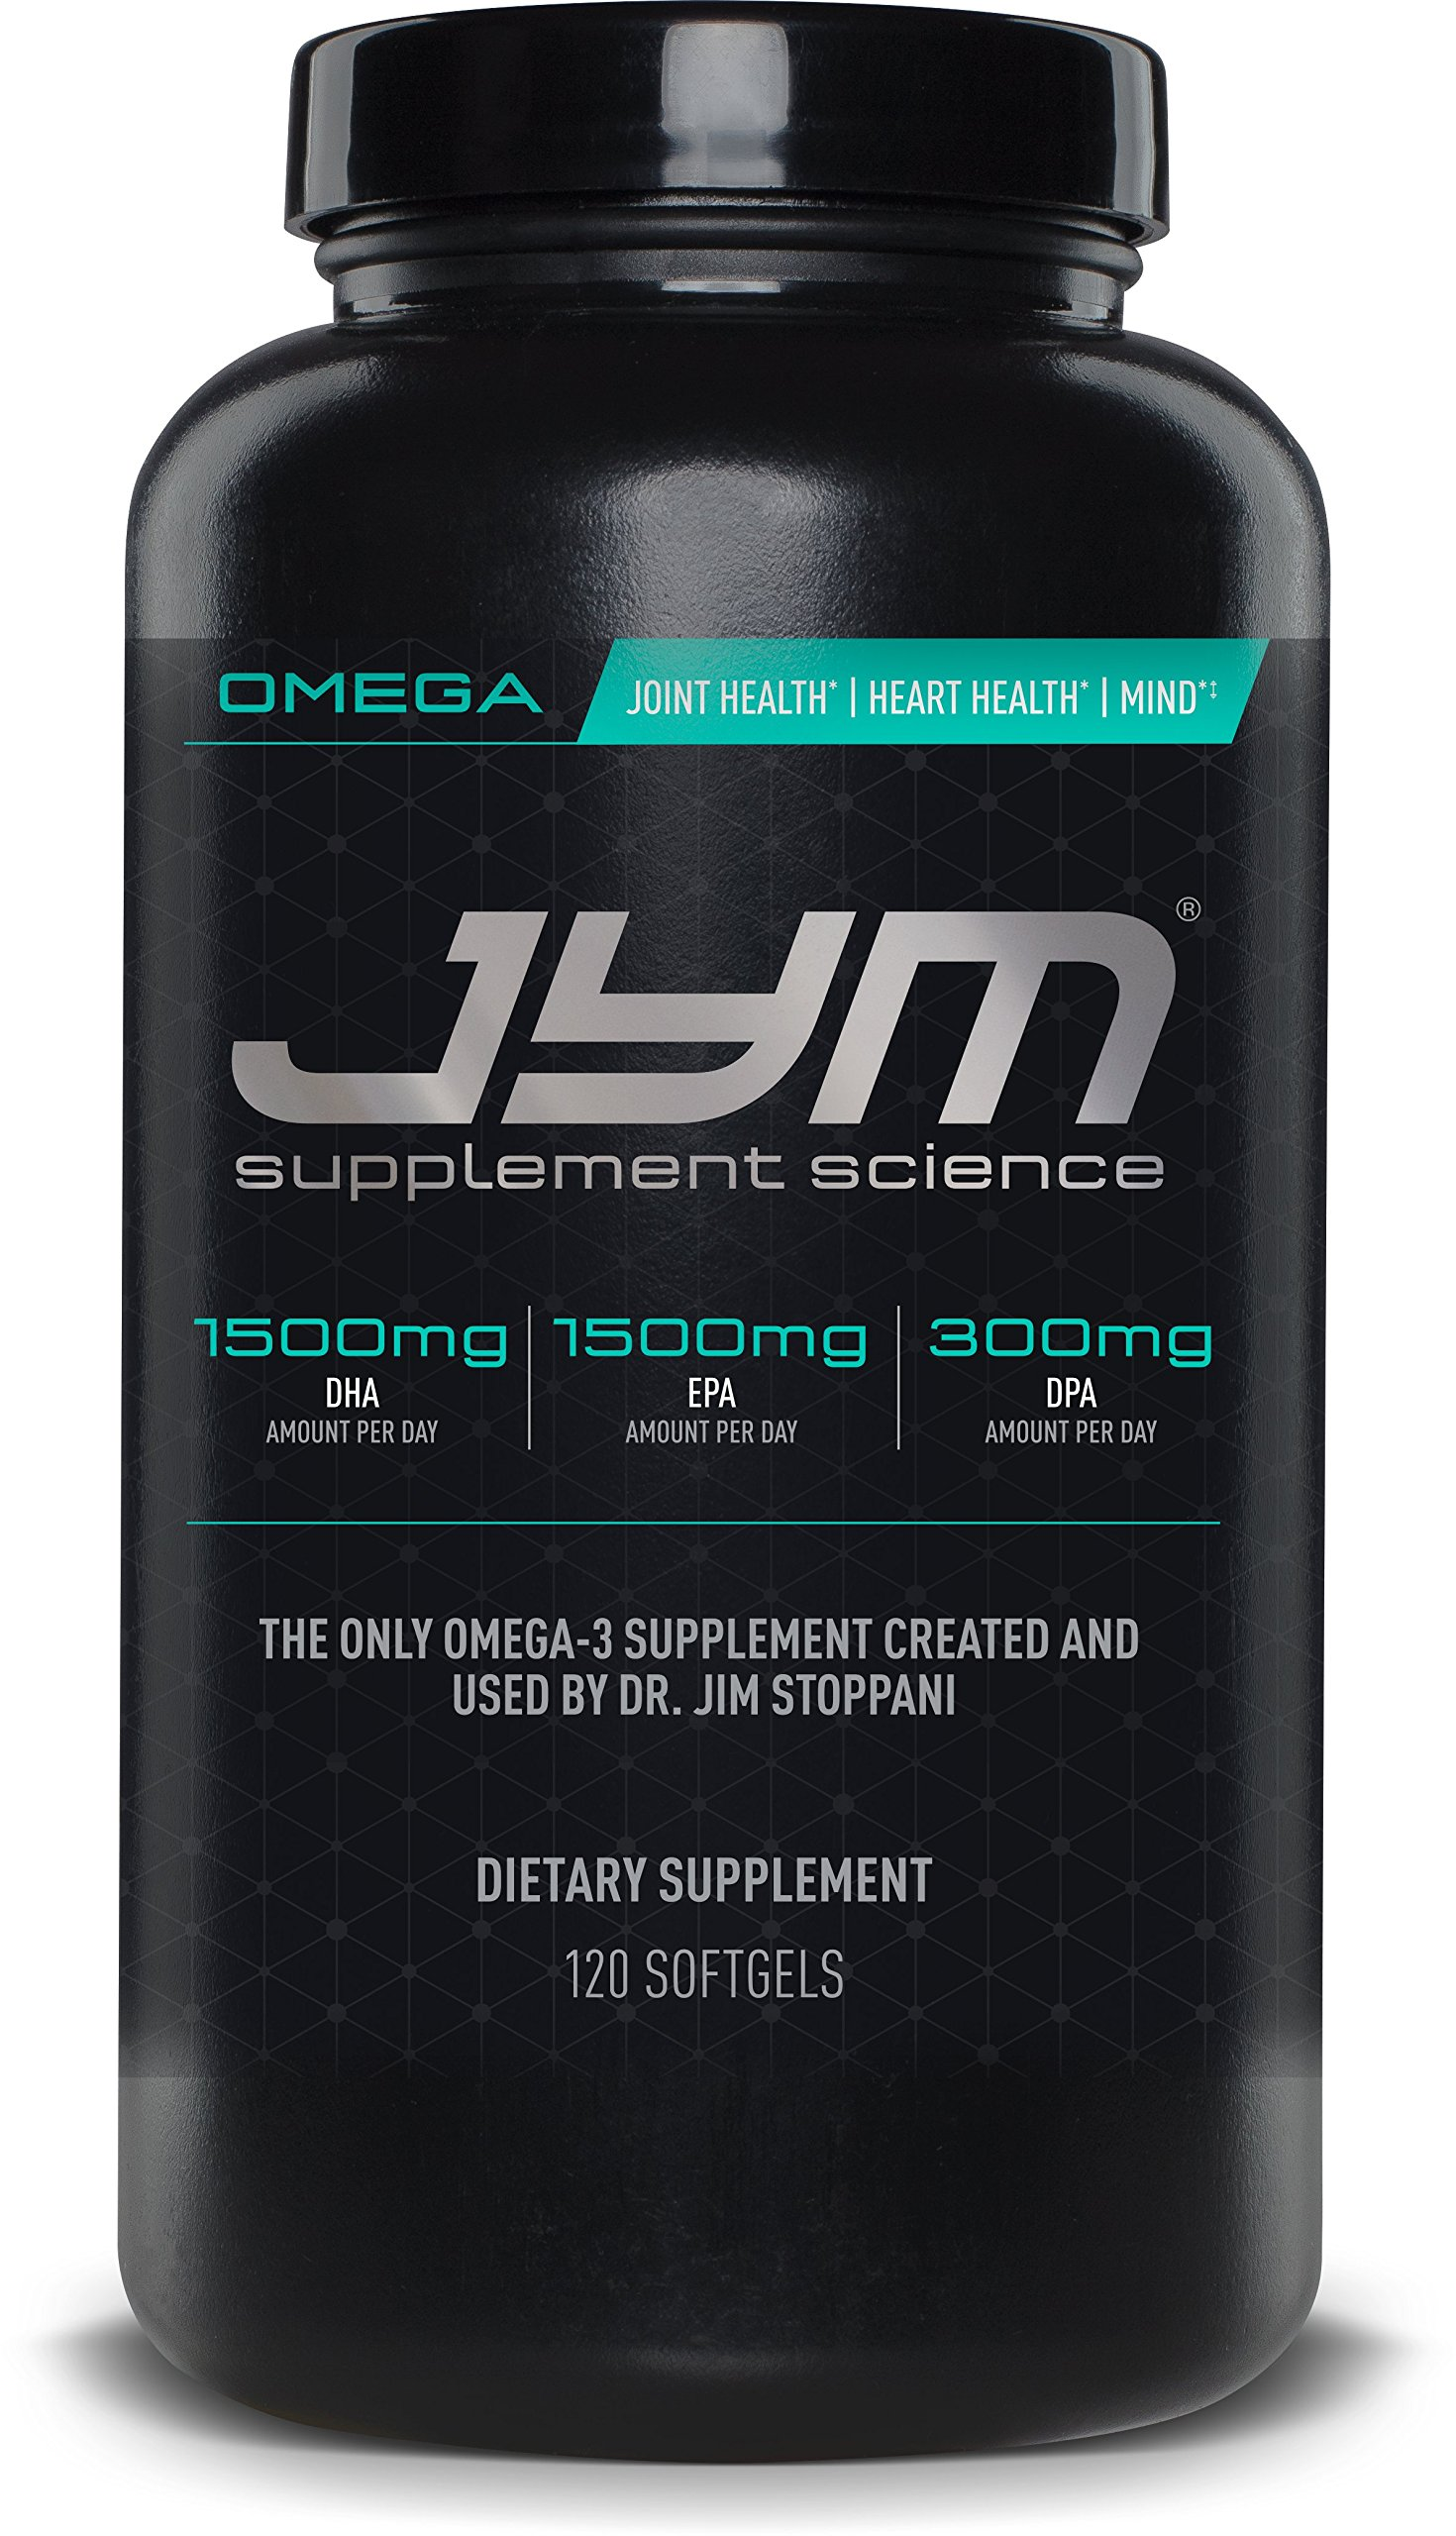 Omega JYM Fish Oil Capsules - Omega 3 Fatty acids, EPA, DHA and DPA | JYM Supplement Science | Omega, 120 Count by JYM Supplement Science